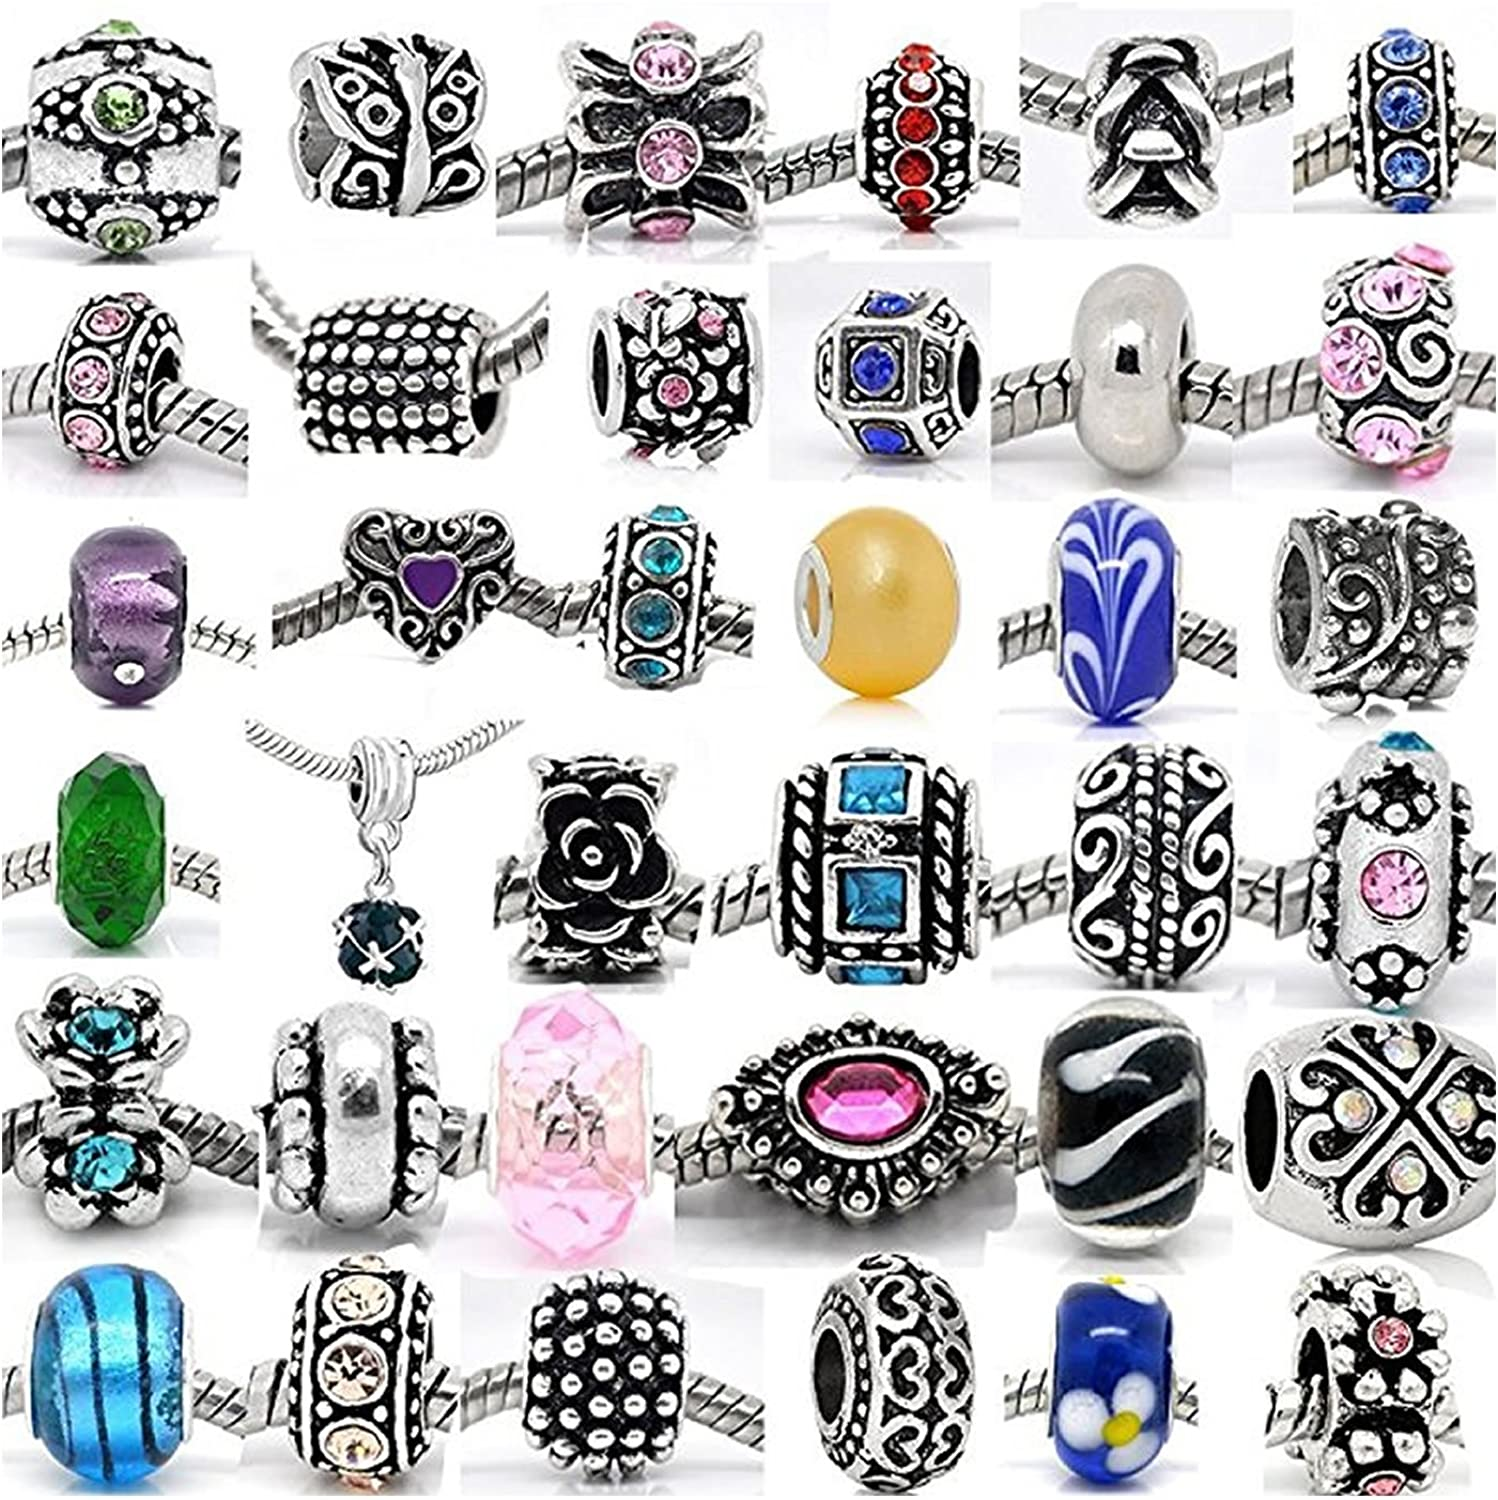 (20 Beads Mix) Pack von Assorted Silver Tone Charms, Rhinestones Bead Charms, Murano Glass Beads und Spacers